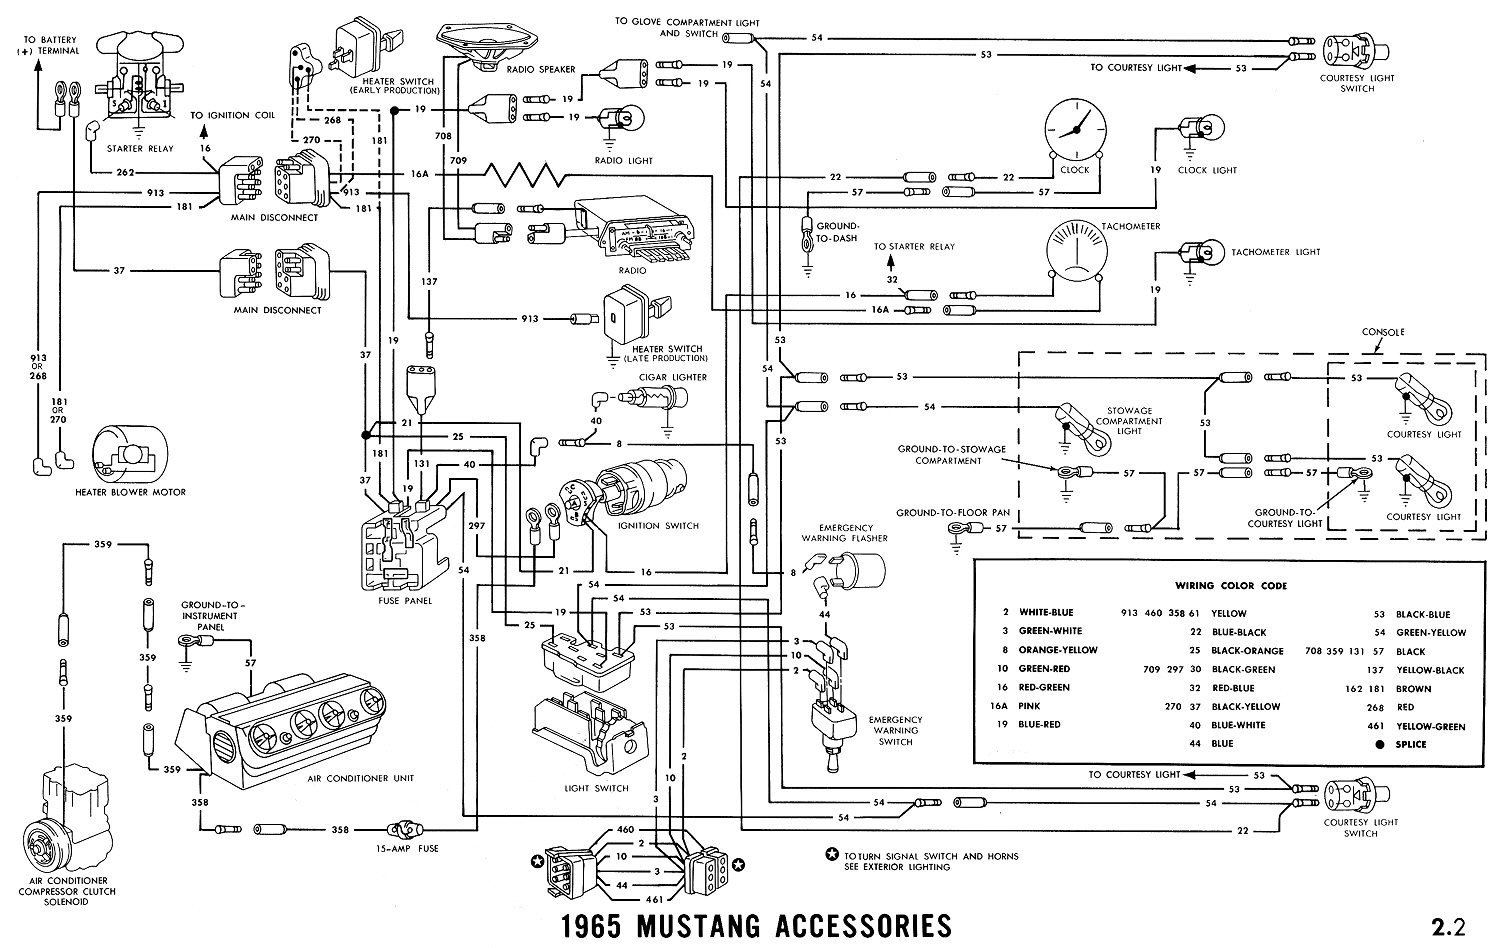 2015 Ford Mustang Wiring Diagram - 88 S10 Air Conditioner Compressor Wiring  Diagram - oonboard.holden-commodore.jeanjaures37.fr | Air Conditioner Wiring Diagrams Ford Mustang |  | Wiring Diagram Resource